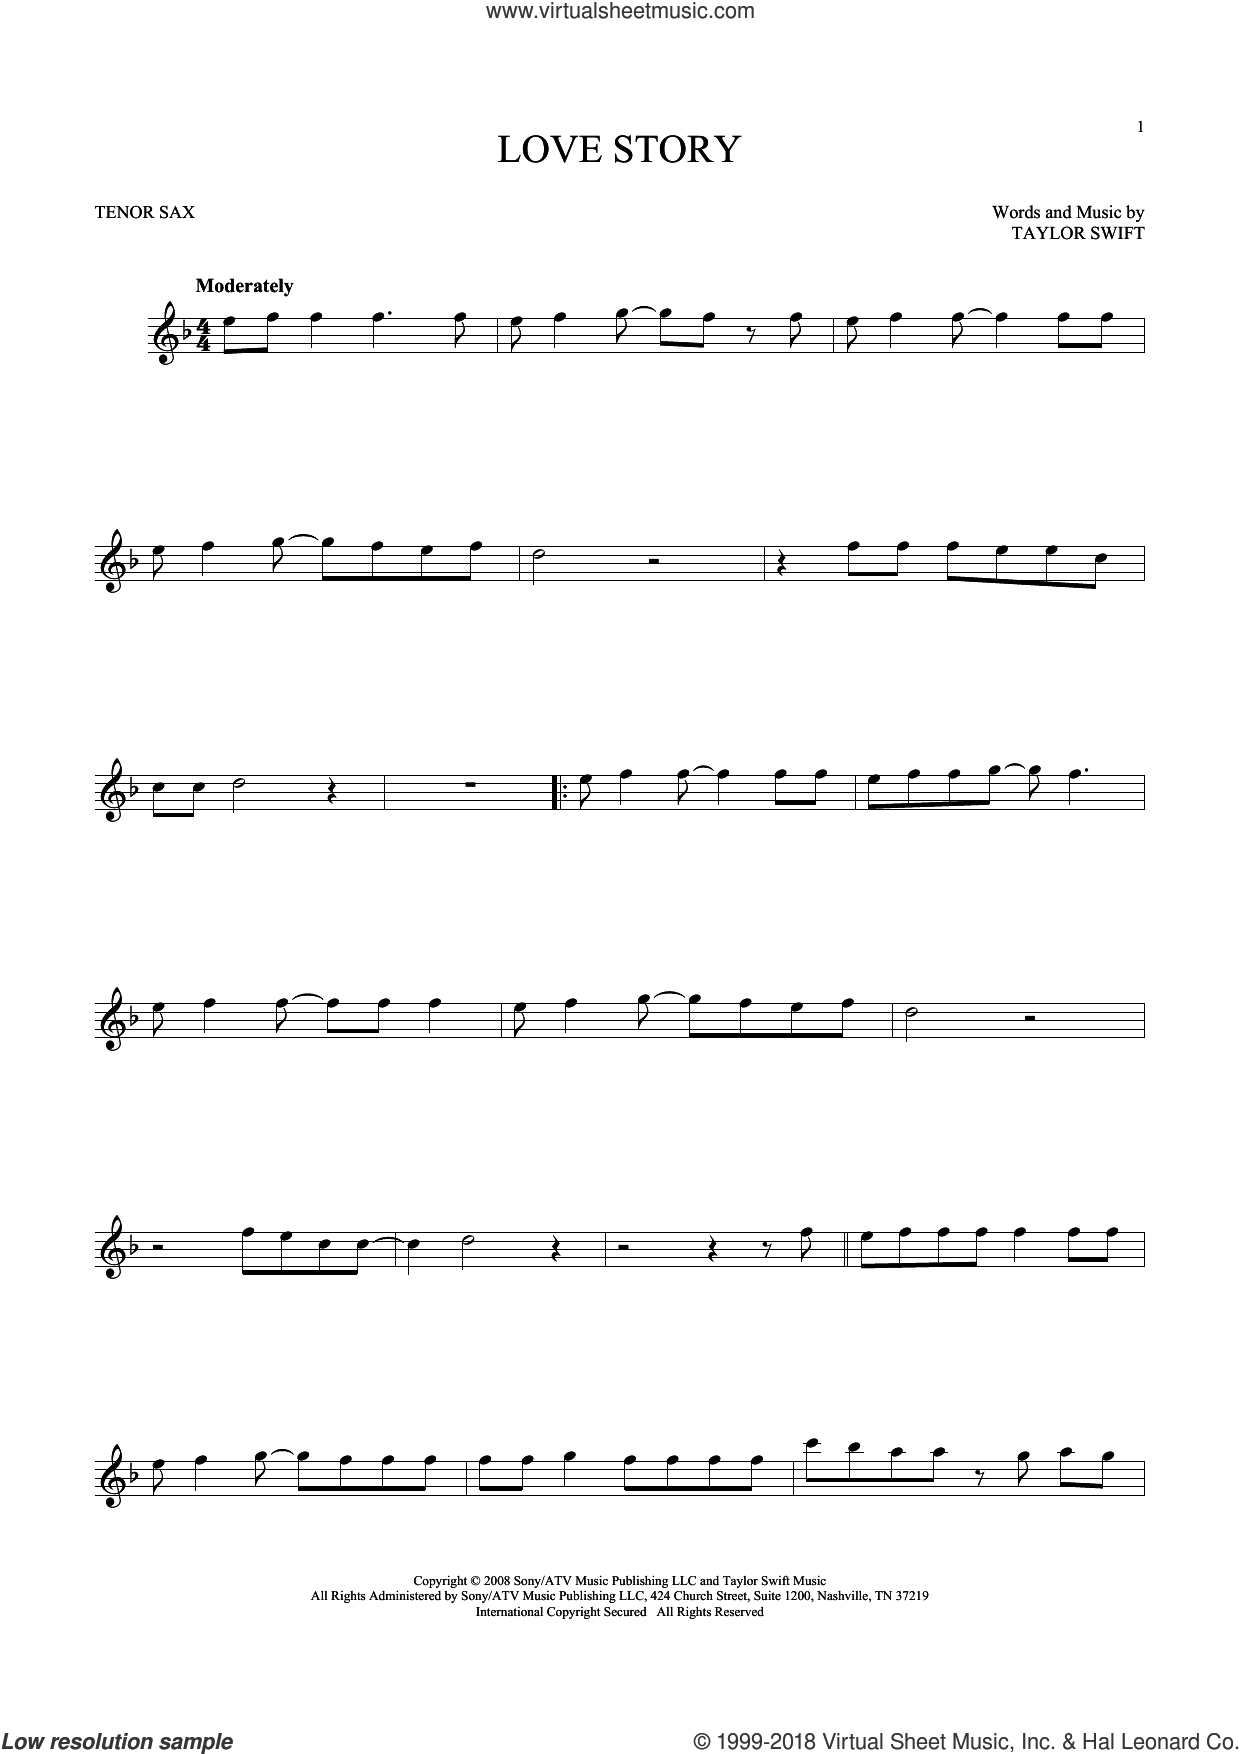 Love Story sheet music for tenor saxophone solo ( Sax) by Taylor Swift. Score Image Preview.